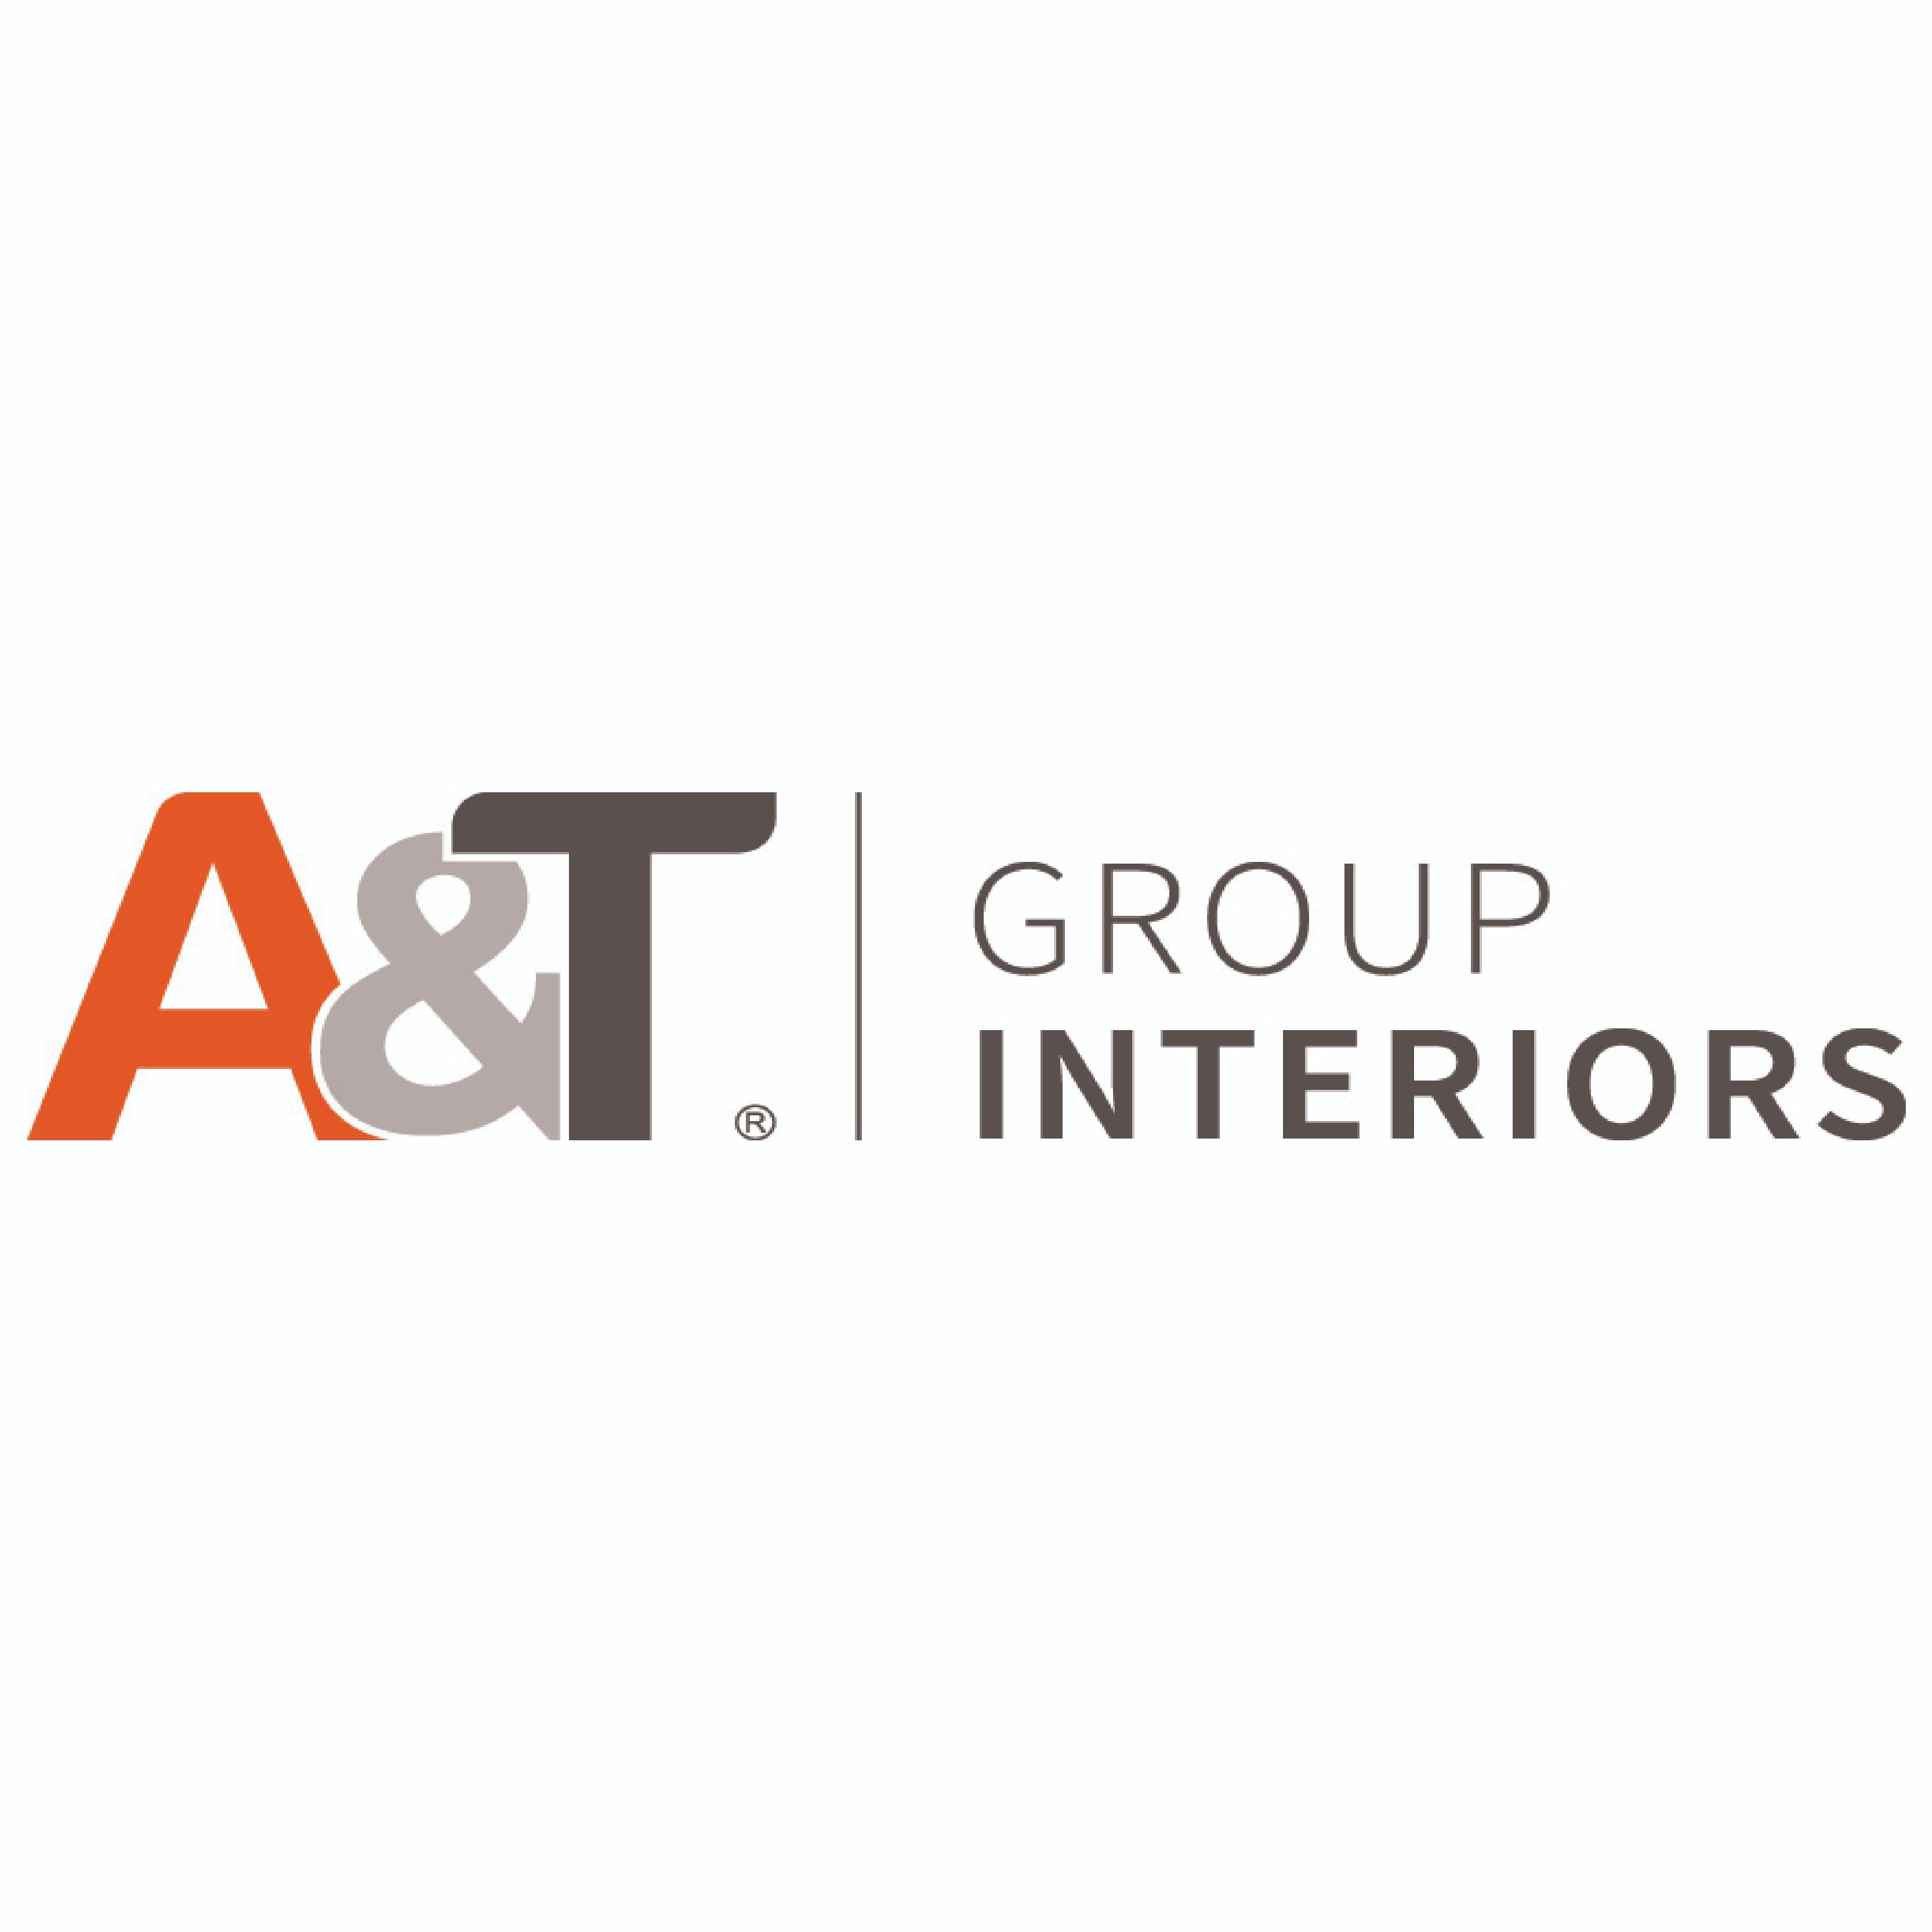 A&T Group Interiors